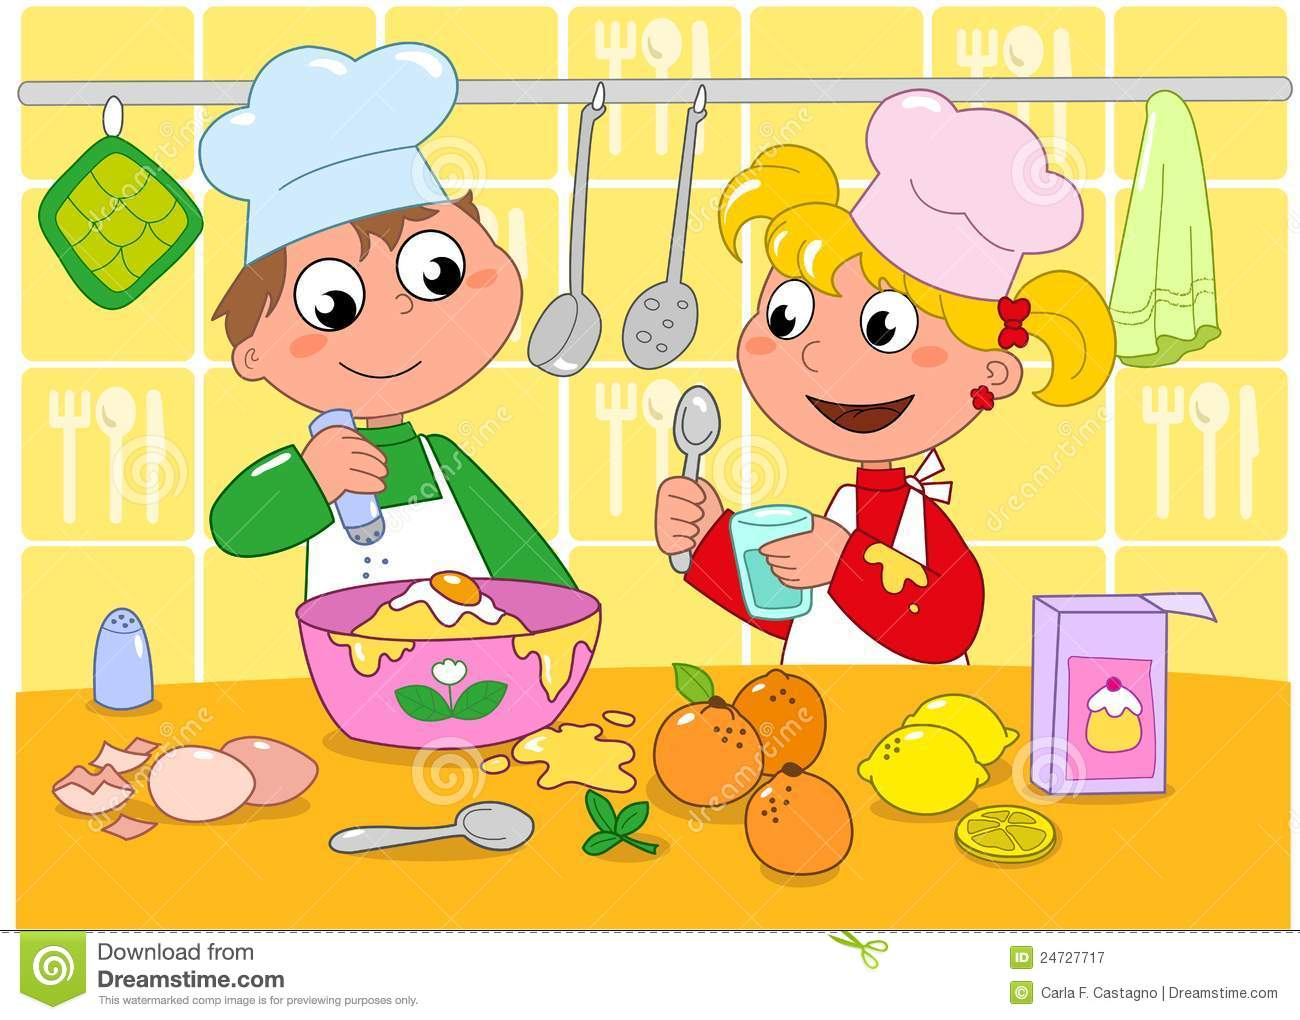 Cocinando Para Ellos Boy And Girl Cooking Stock Vector. Illustration Of Food